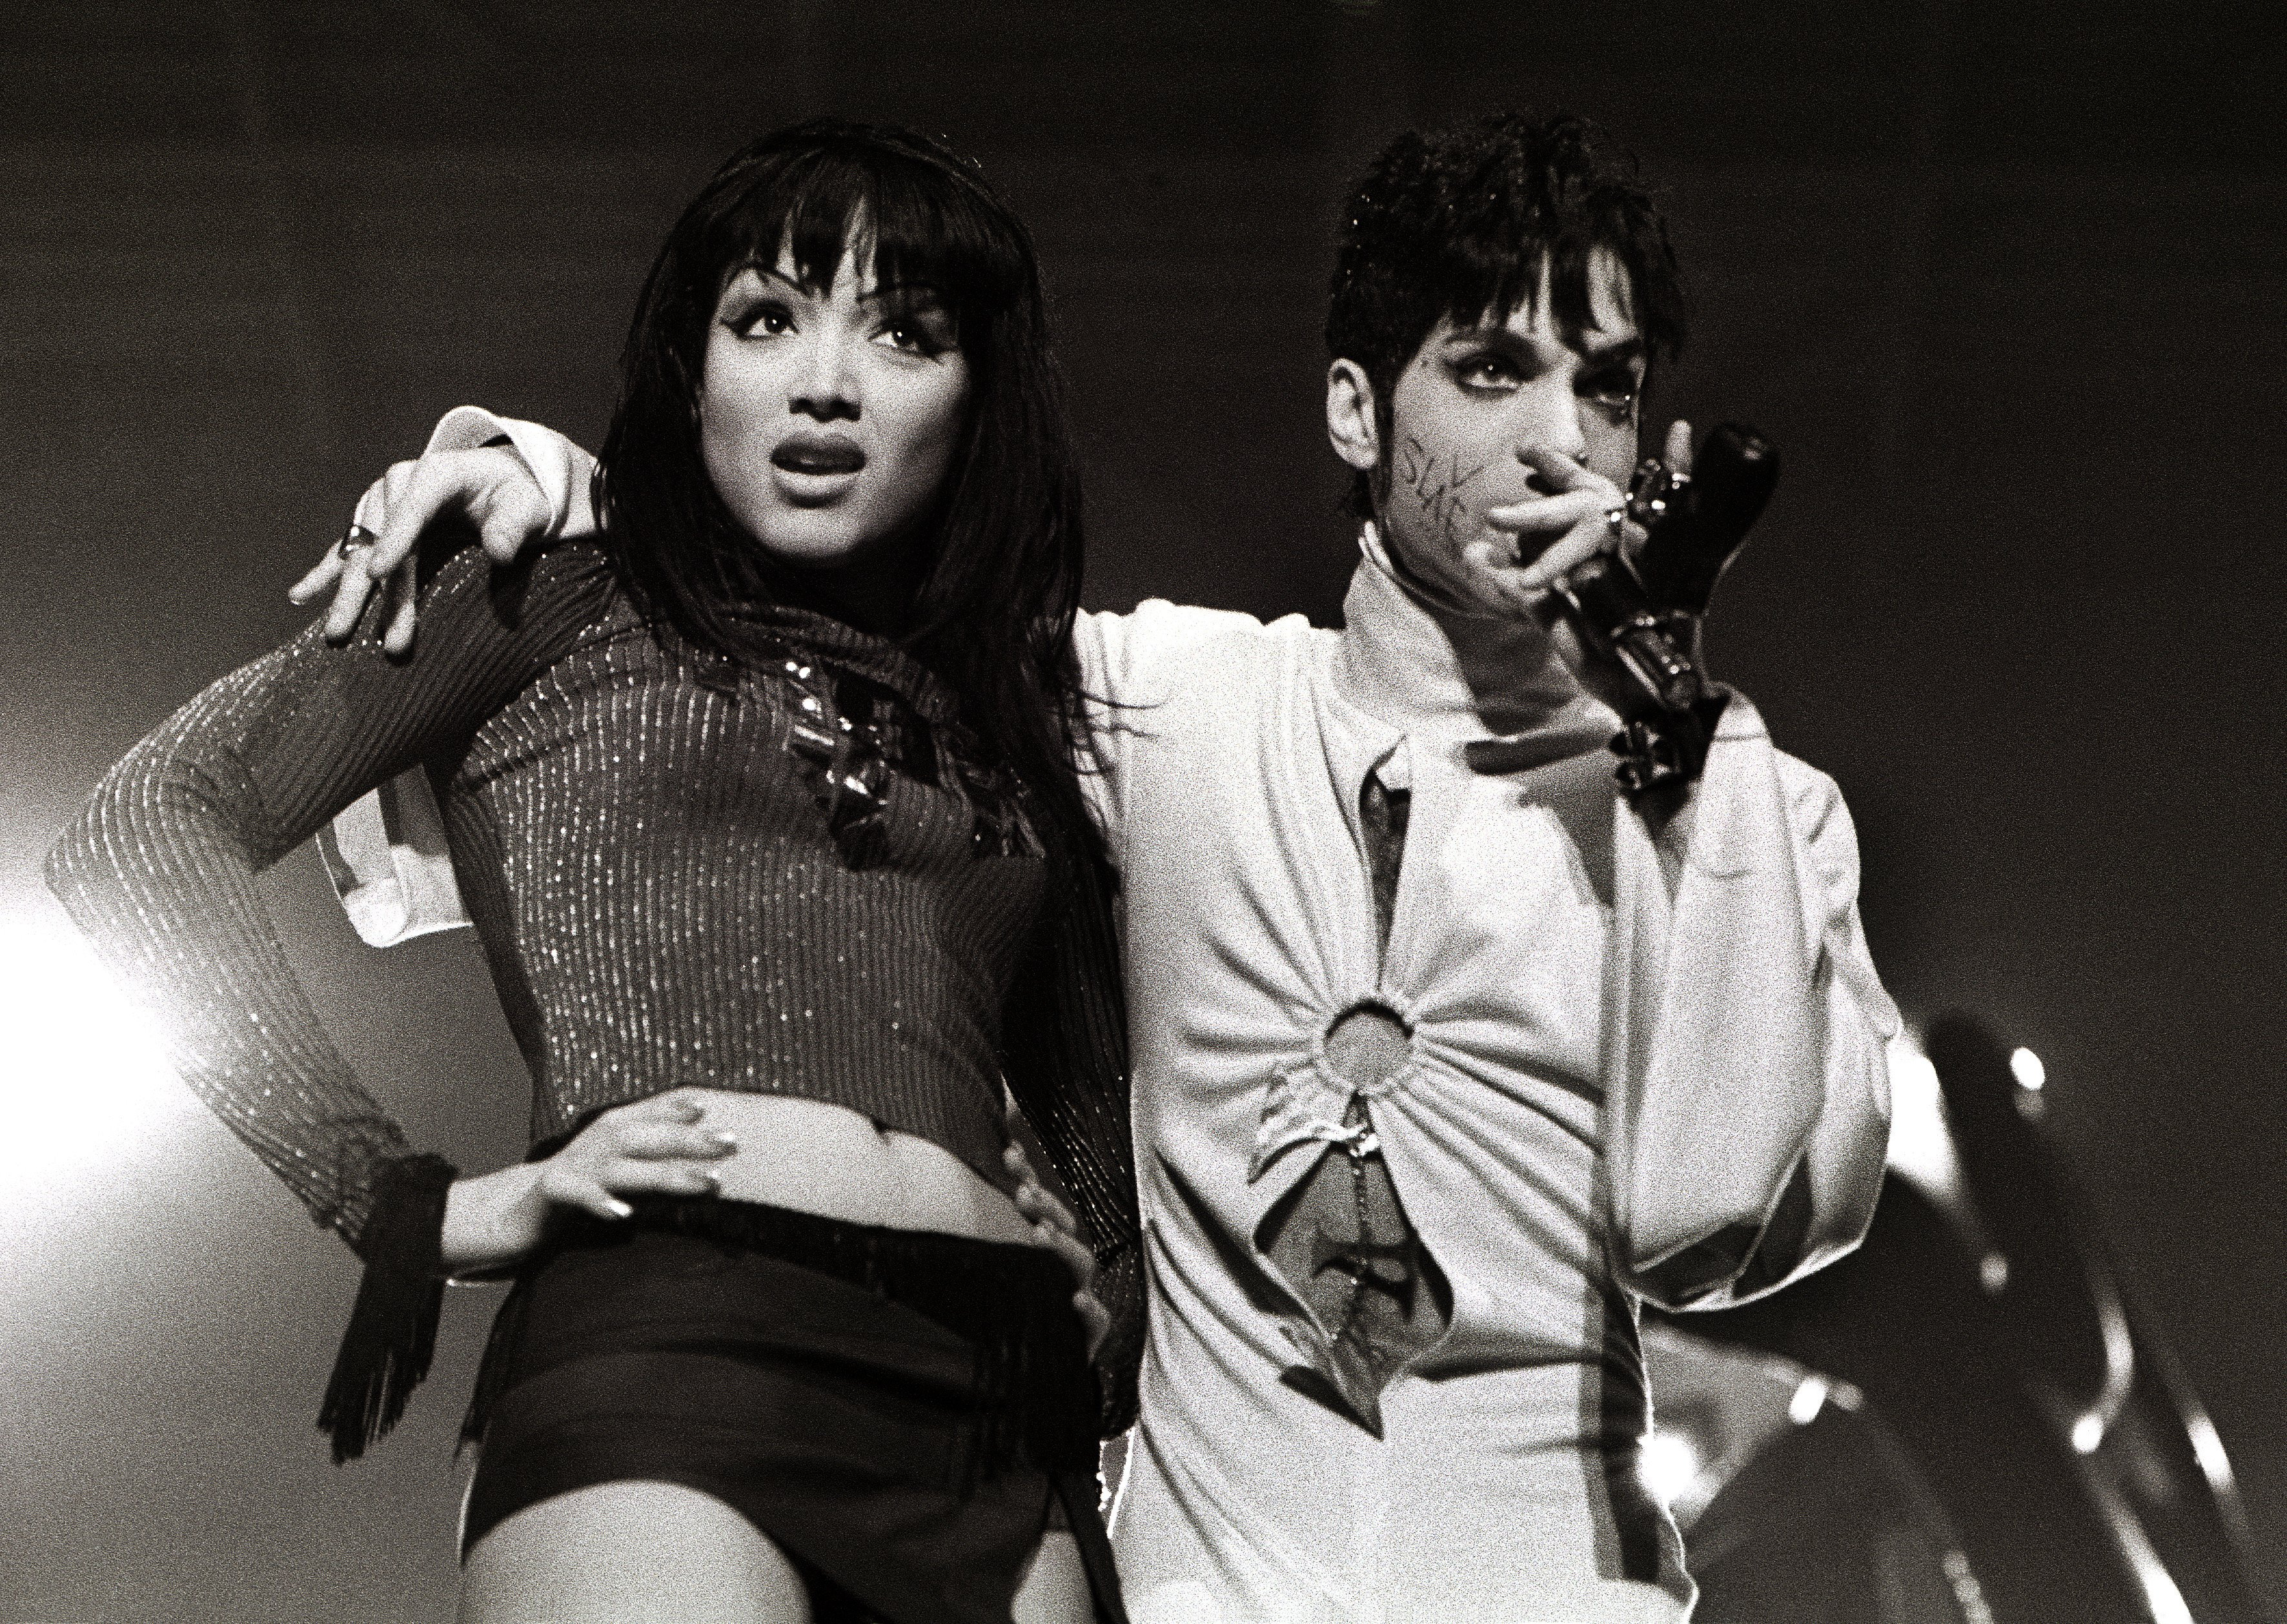 Prince and Mayte Garcia perform on stage at Brabant hallen, Den Bosch, Netherllands, 24th March 1995. | Photo: GettyImages